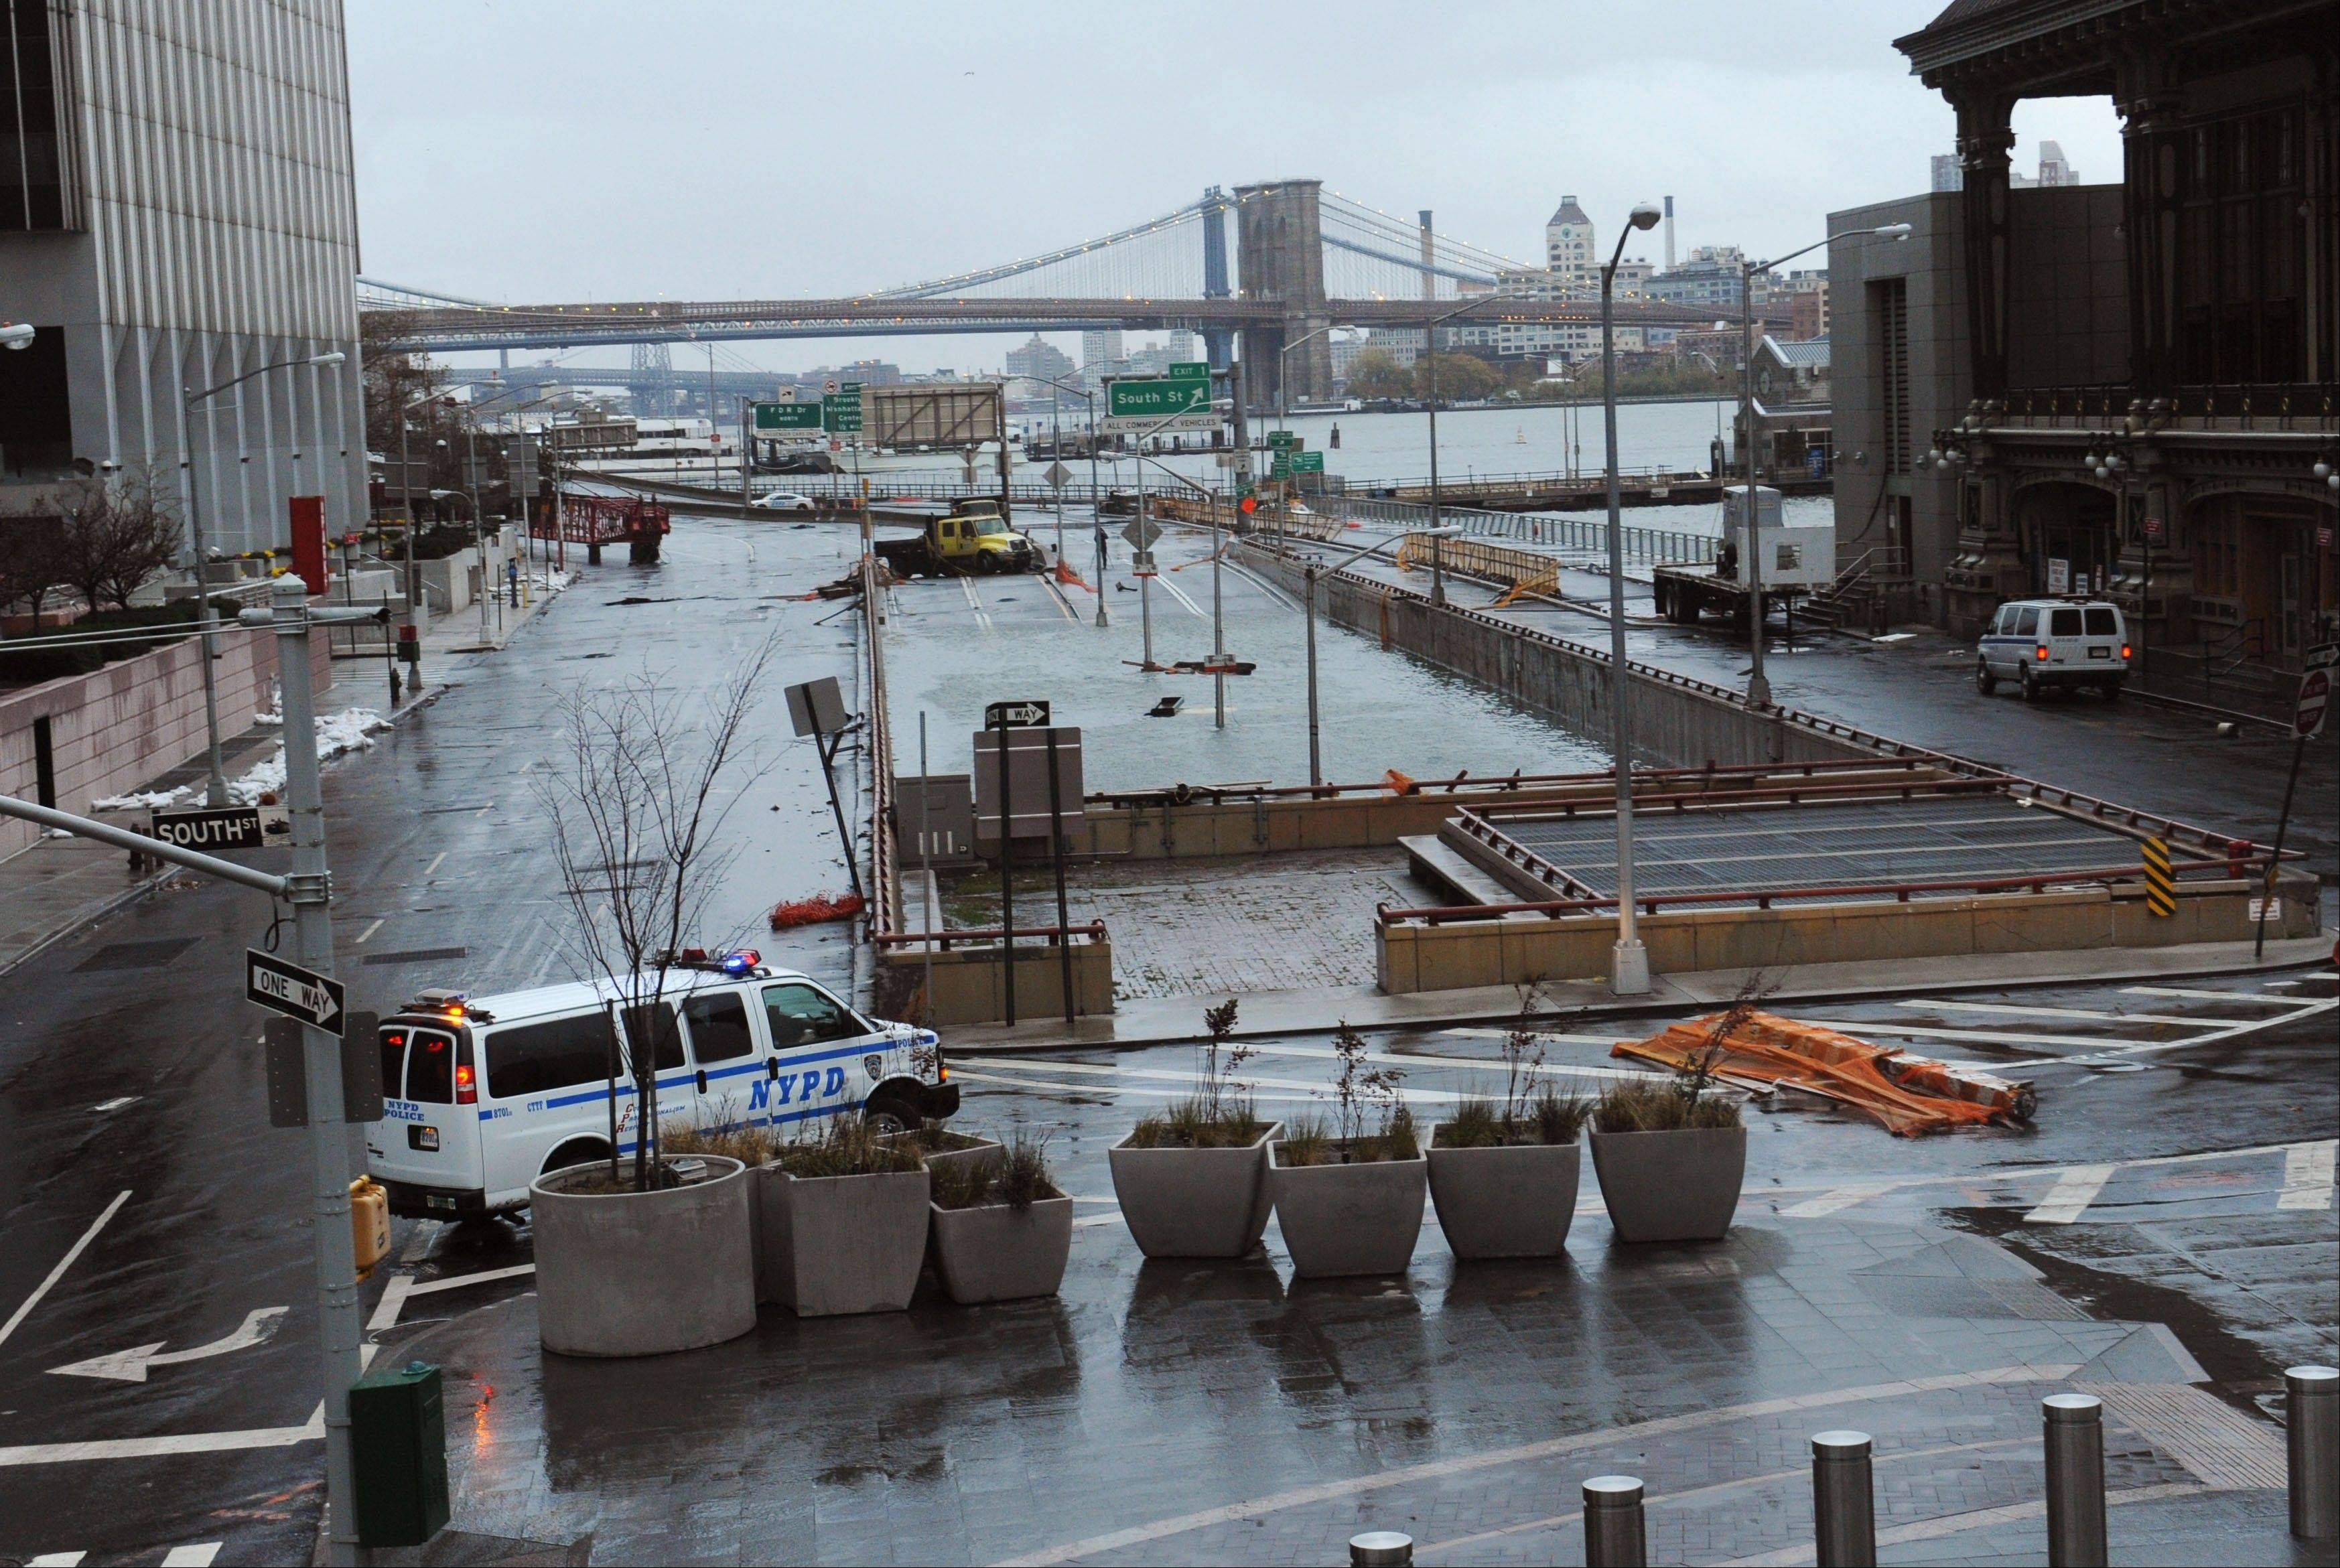 Water reaches the street level of the flooded Brooklyn Battery Tunnel, Tuesday, Oct. 30, 2012, in New York. Sandy arrived along the East Coast and morphed into a huge and problematic system, putting more than 7.5 million homes and businesses in the dark and causing a number of deaths.